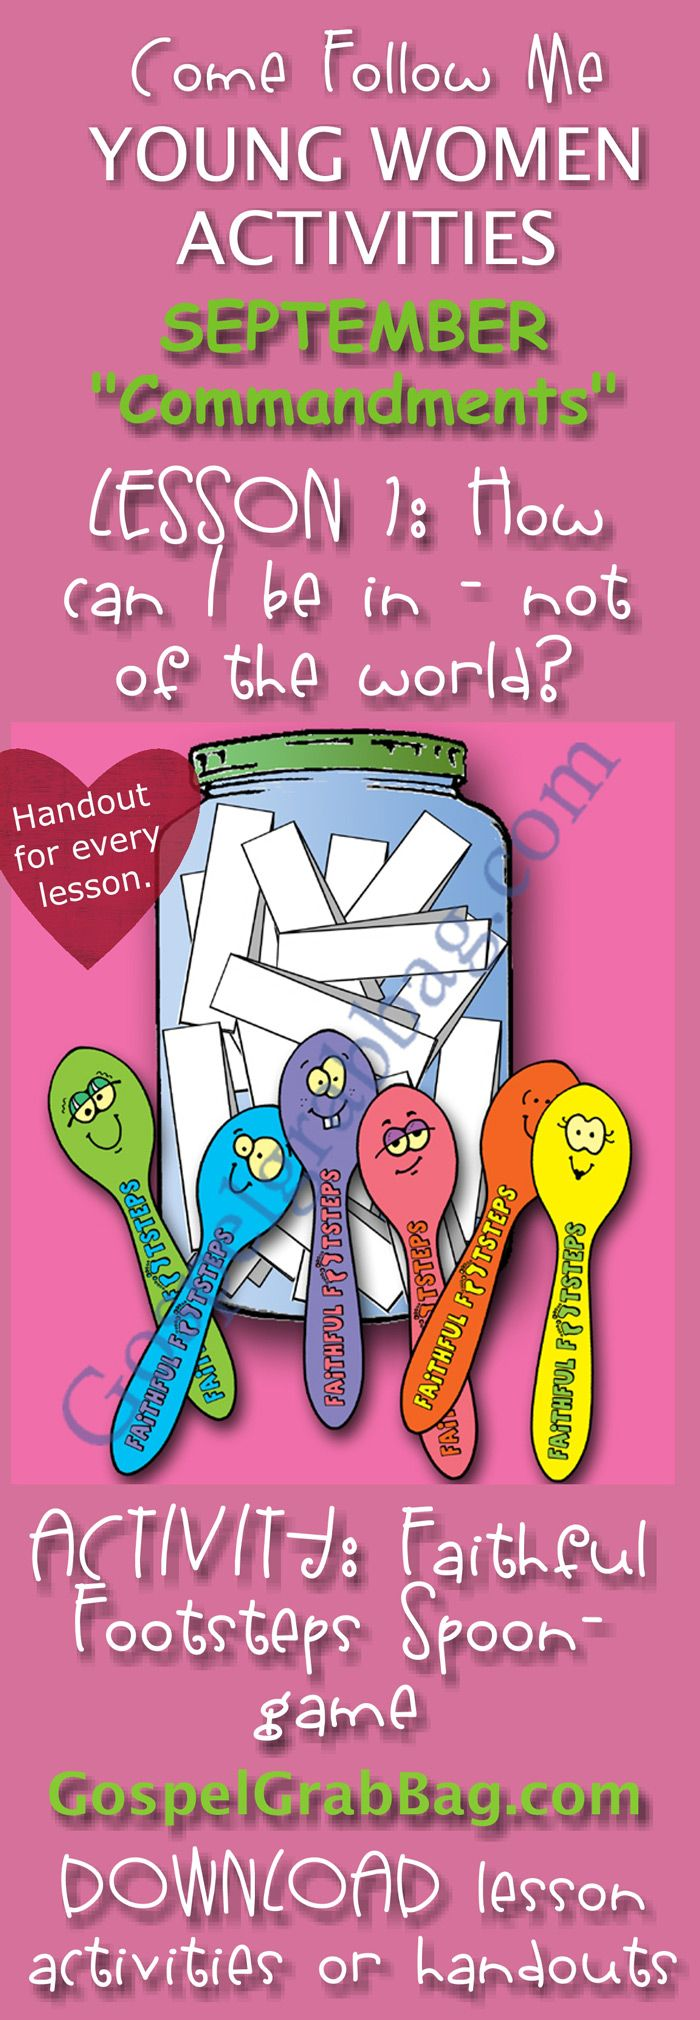 """CHOOSE THE RIGHT: Come Follow Me – LDS Young Women Activities, September Theme: """"Commandments"""", Lesson #1 How can I be in the world but not of the world? handout for every lesson, ACTIVITY: Faithful Footsteps Spoon Game – to download from gospelgrabbag.com"""